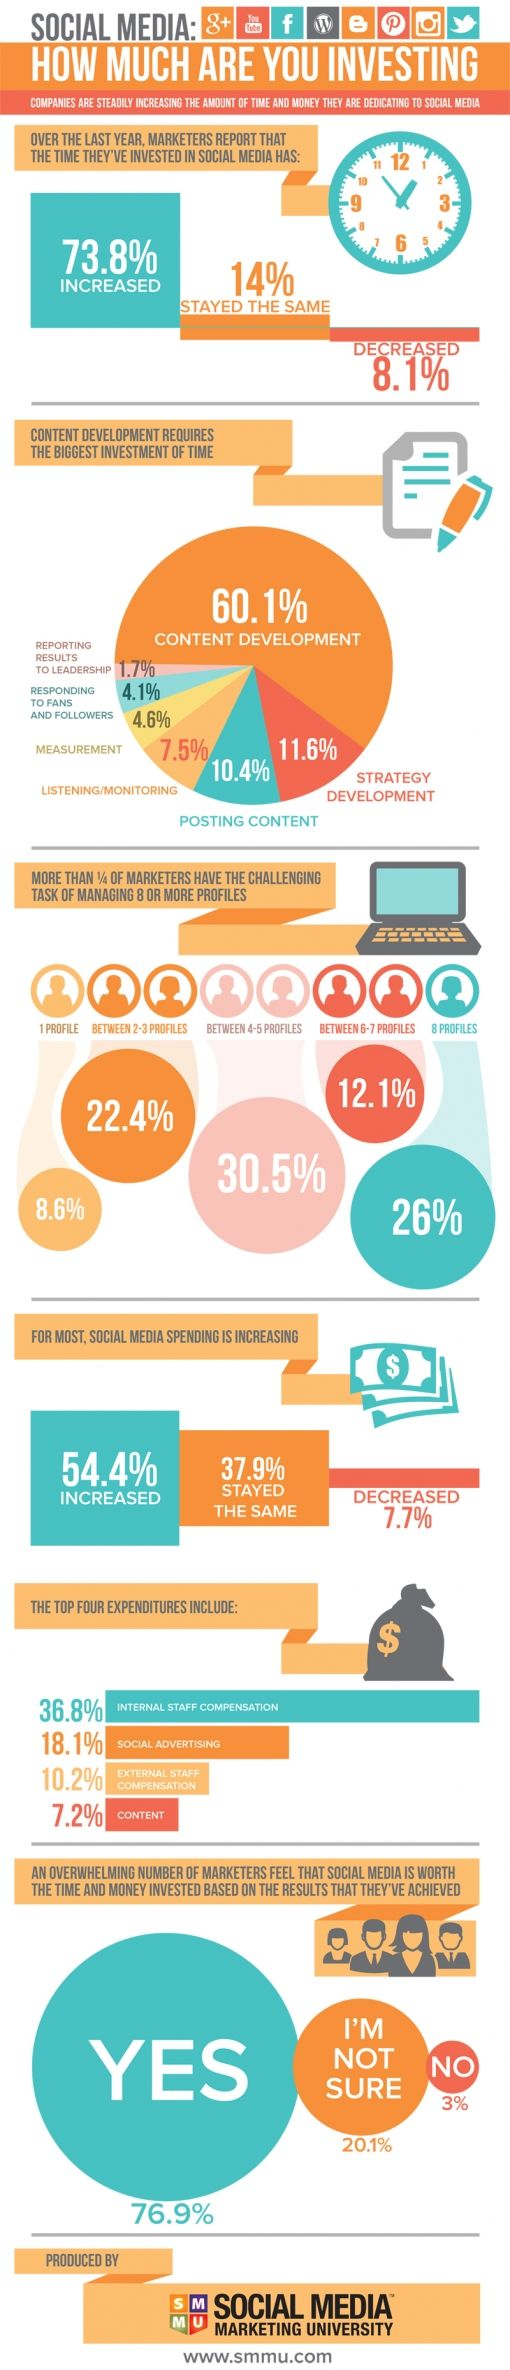 Social_media_-_How_much_are_you_investing